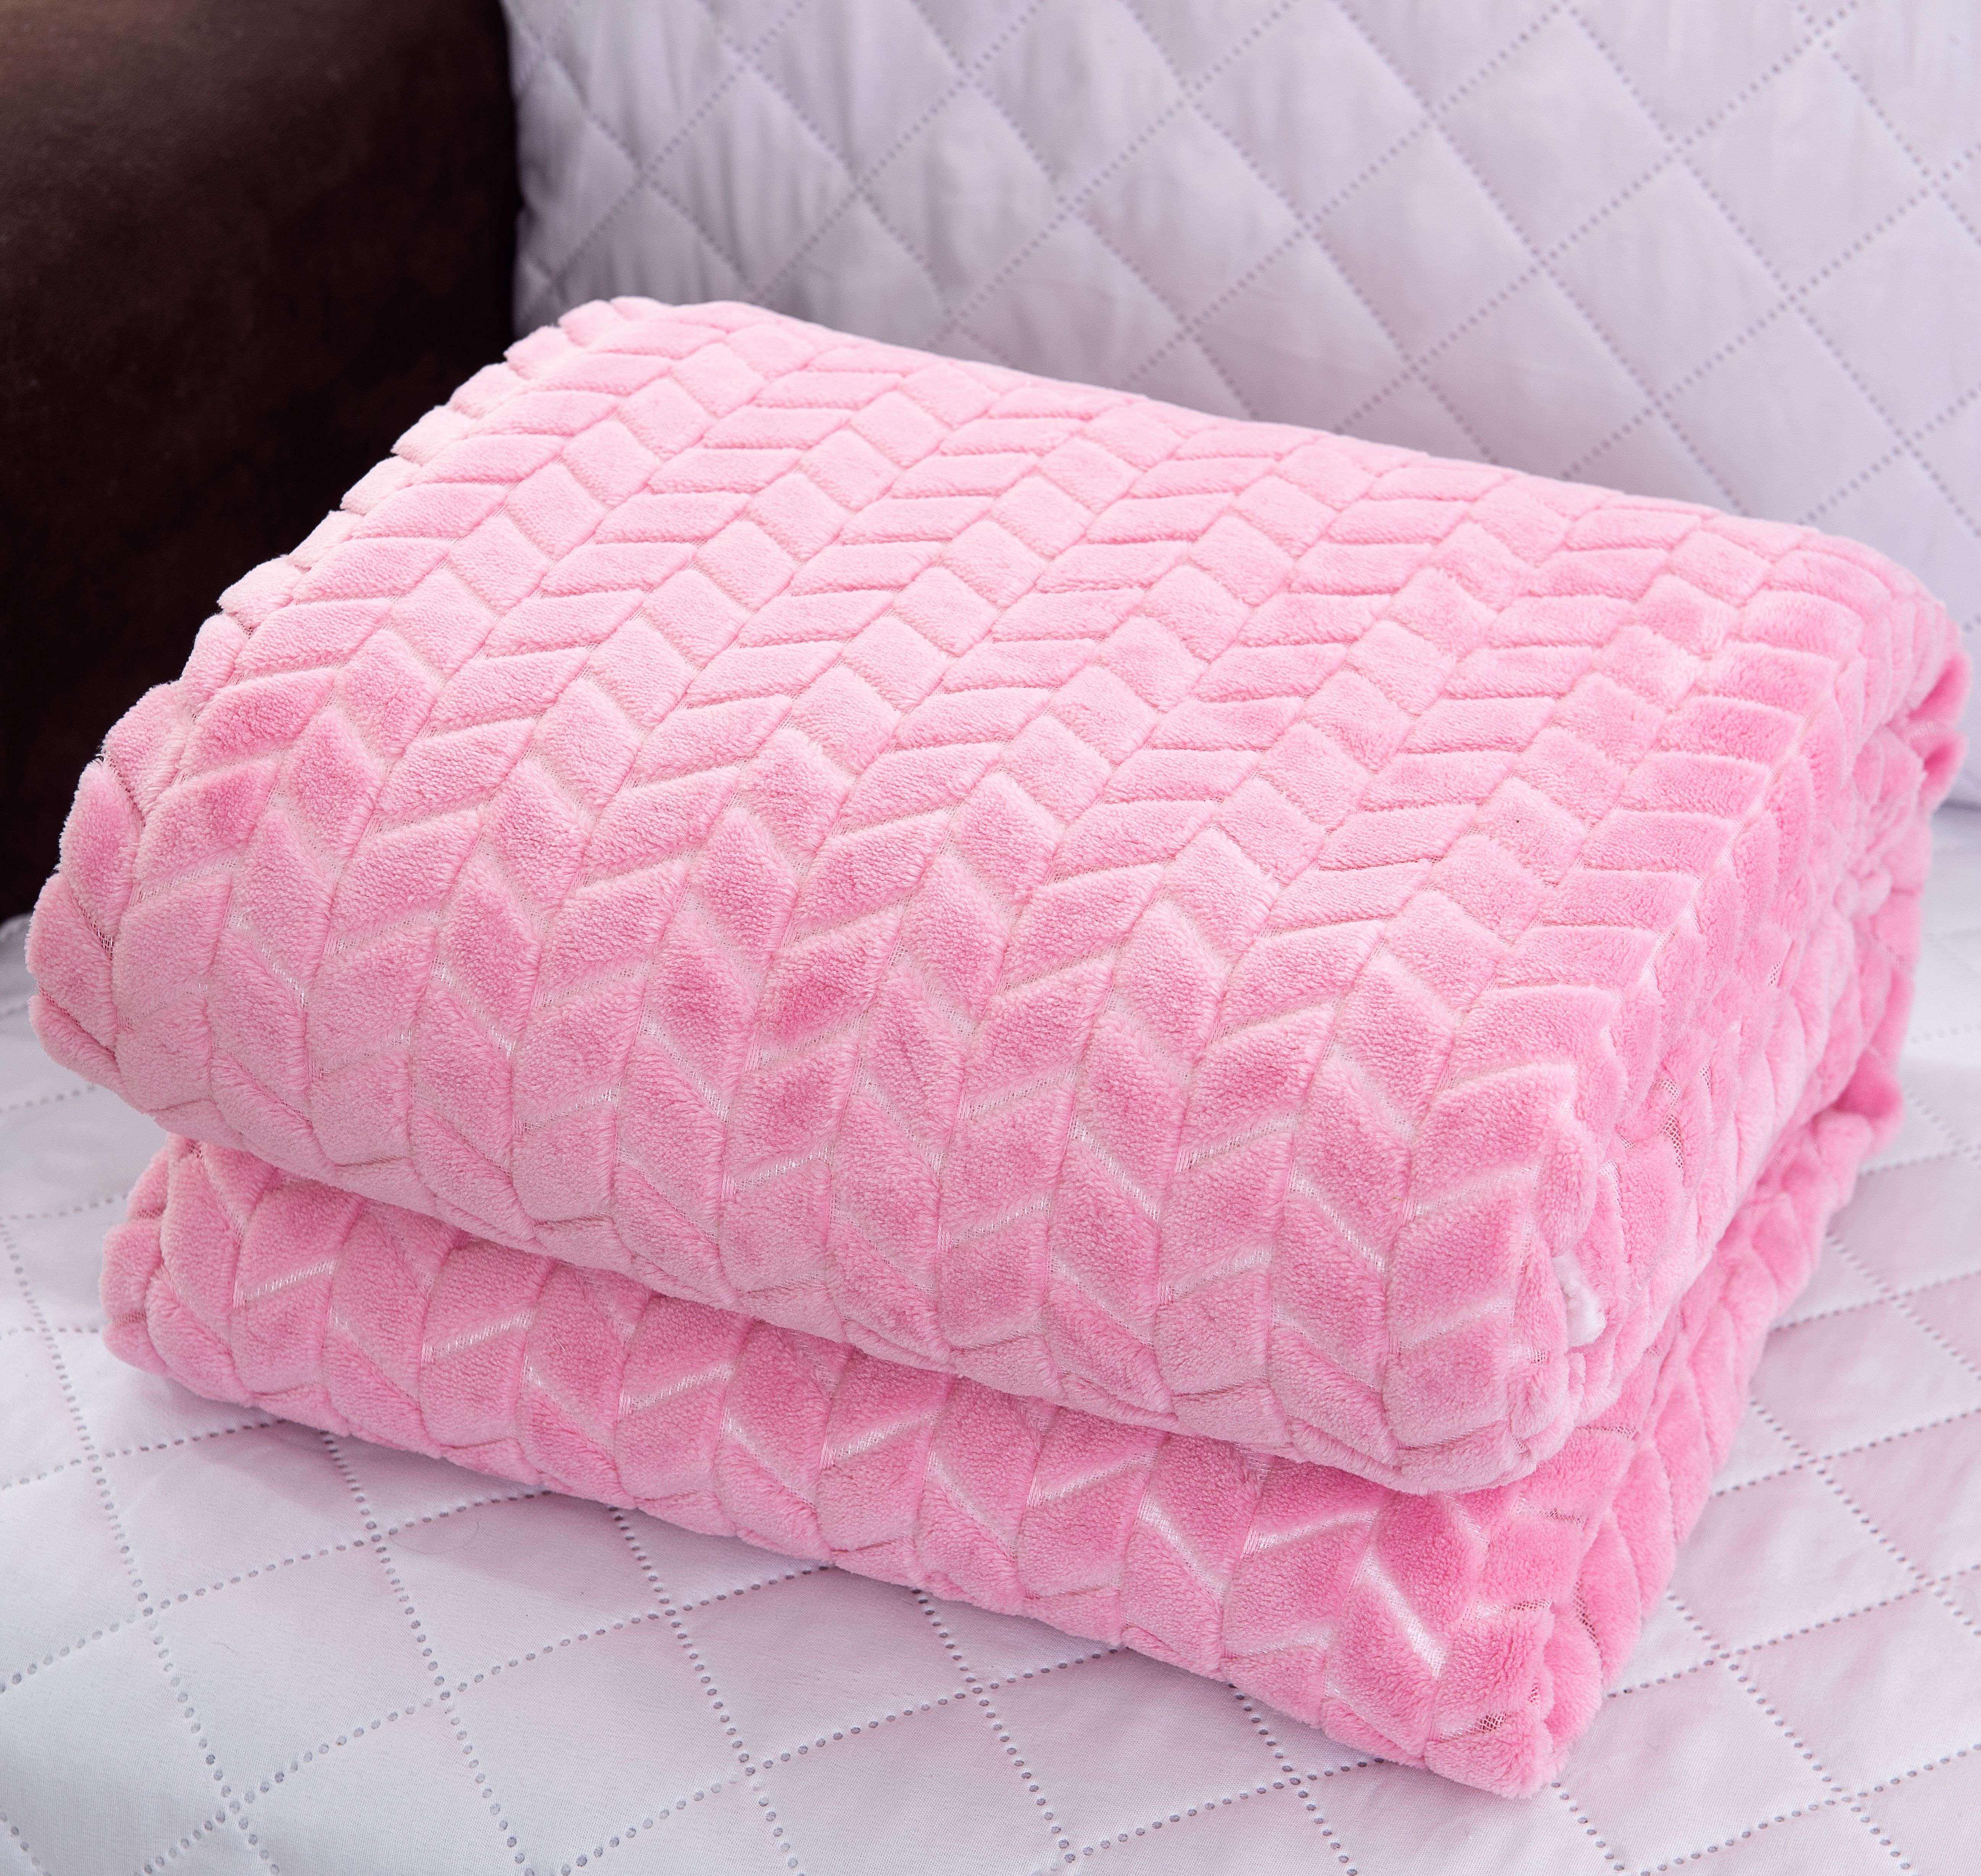 China Factory Textile Stamp Super Soft Solid Stamp Gold Silver h fluffy Flannel Fleece Royal jacquard blanket